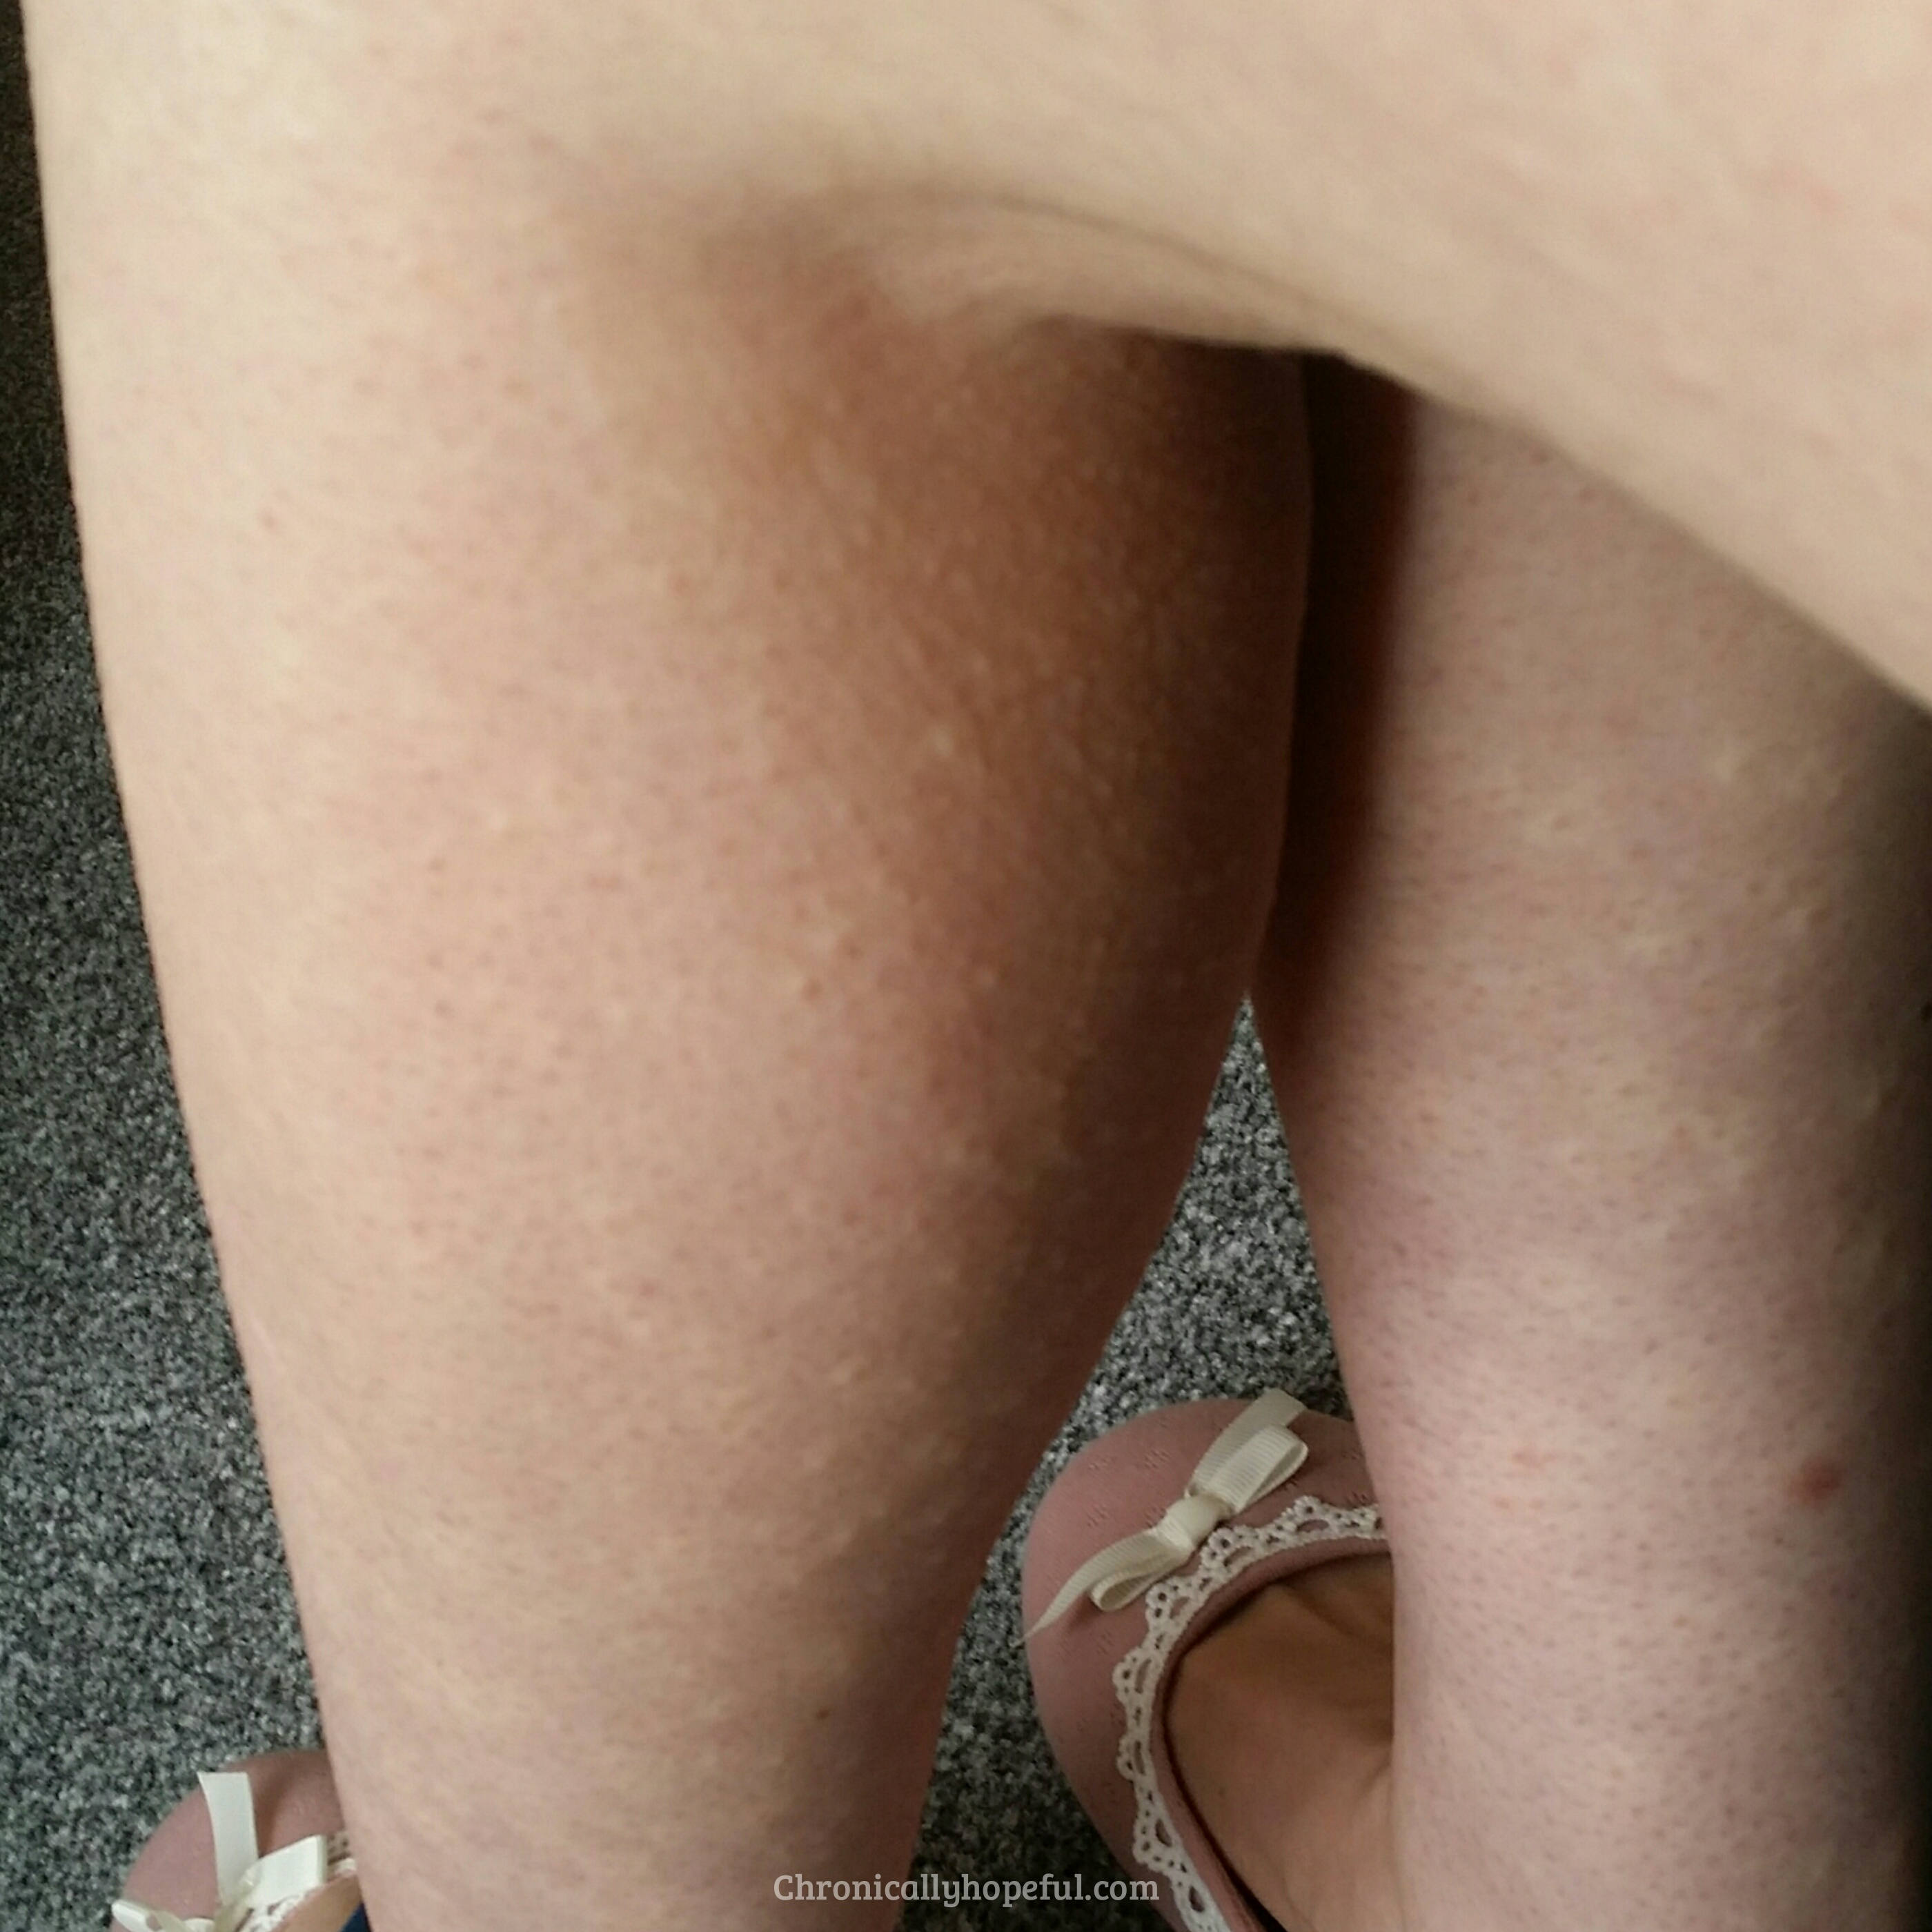 Daily Hives On Legs, Histamine Intolerance, Chronically Hopeful